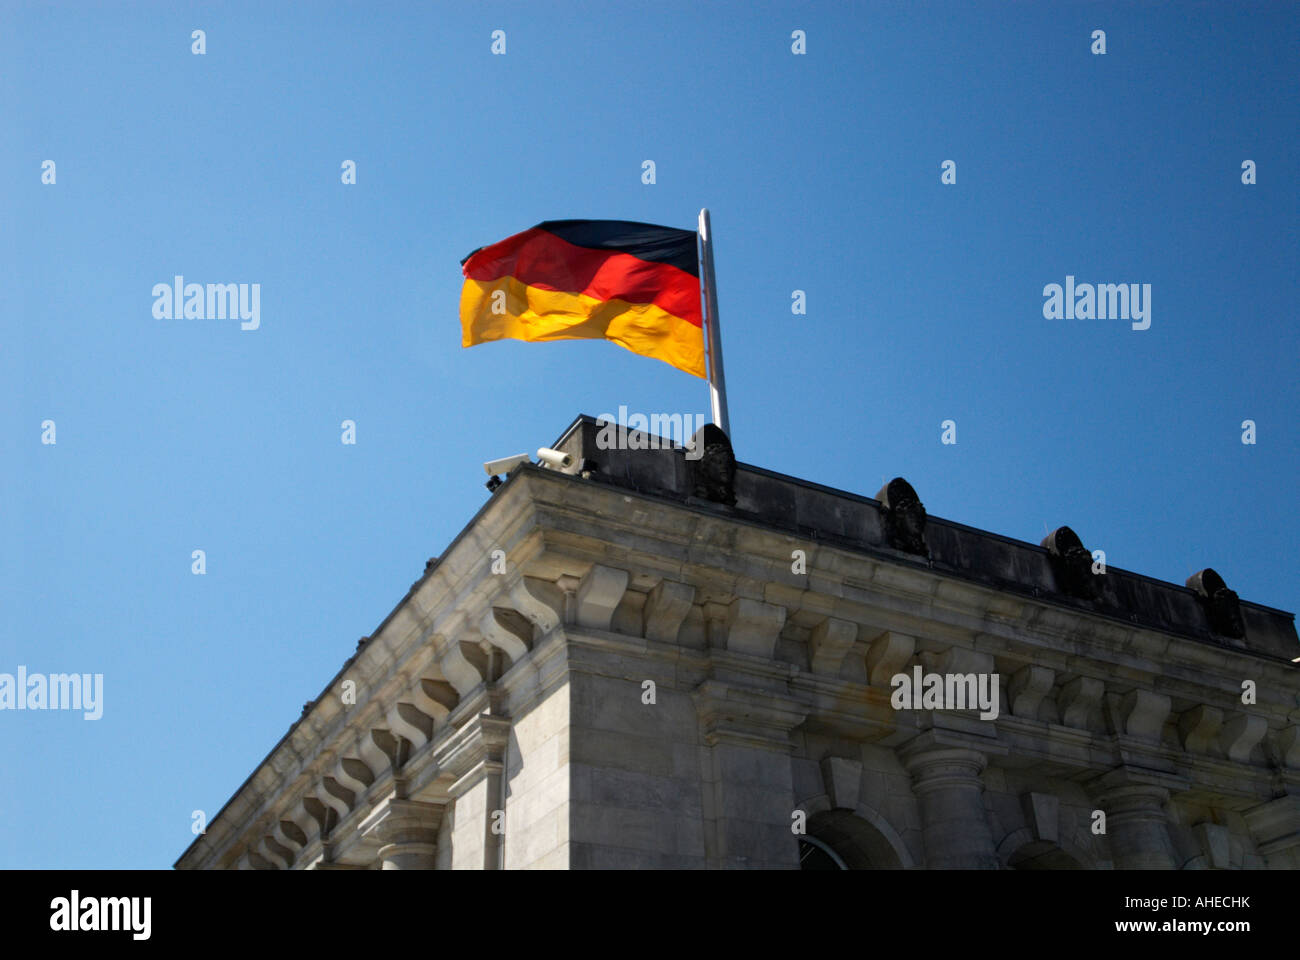 German flag on the parliament building in Berlin - Stock Image